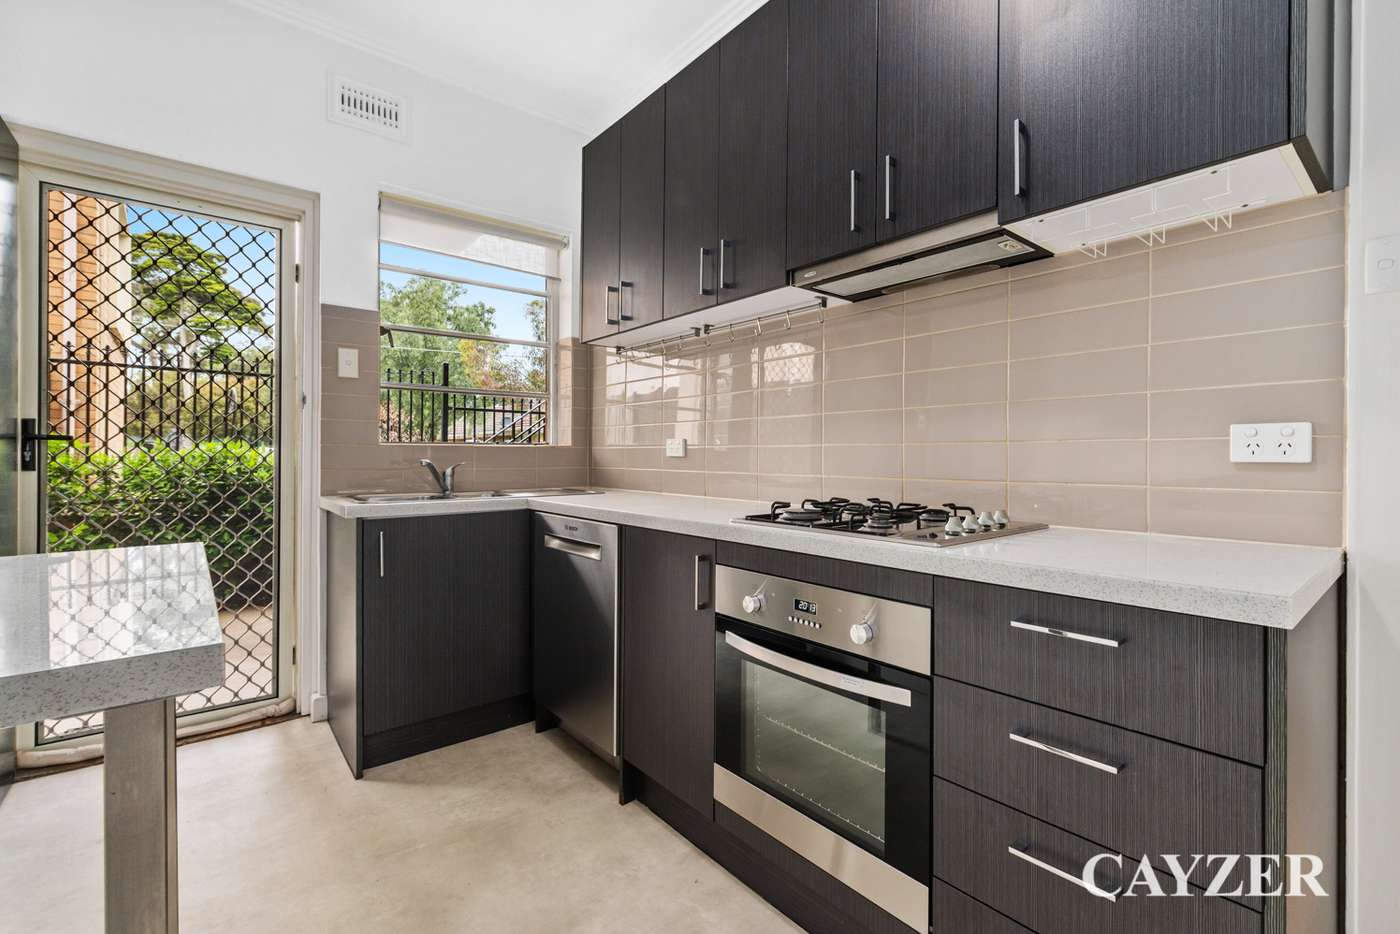 Main view of Homely apartment listing, 1/40 Eildon Road, St Kilda VIC 3182